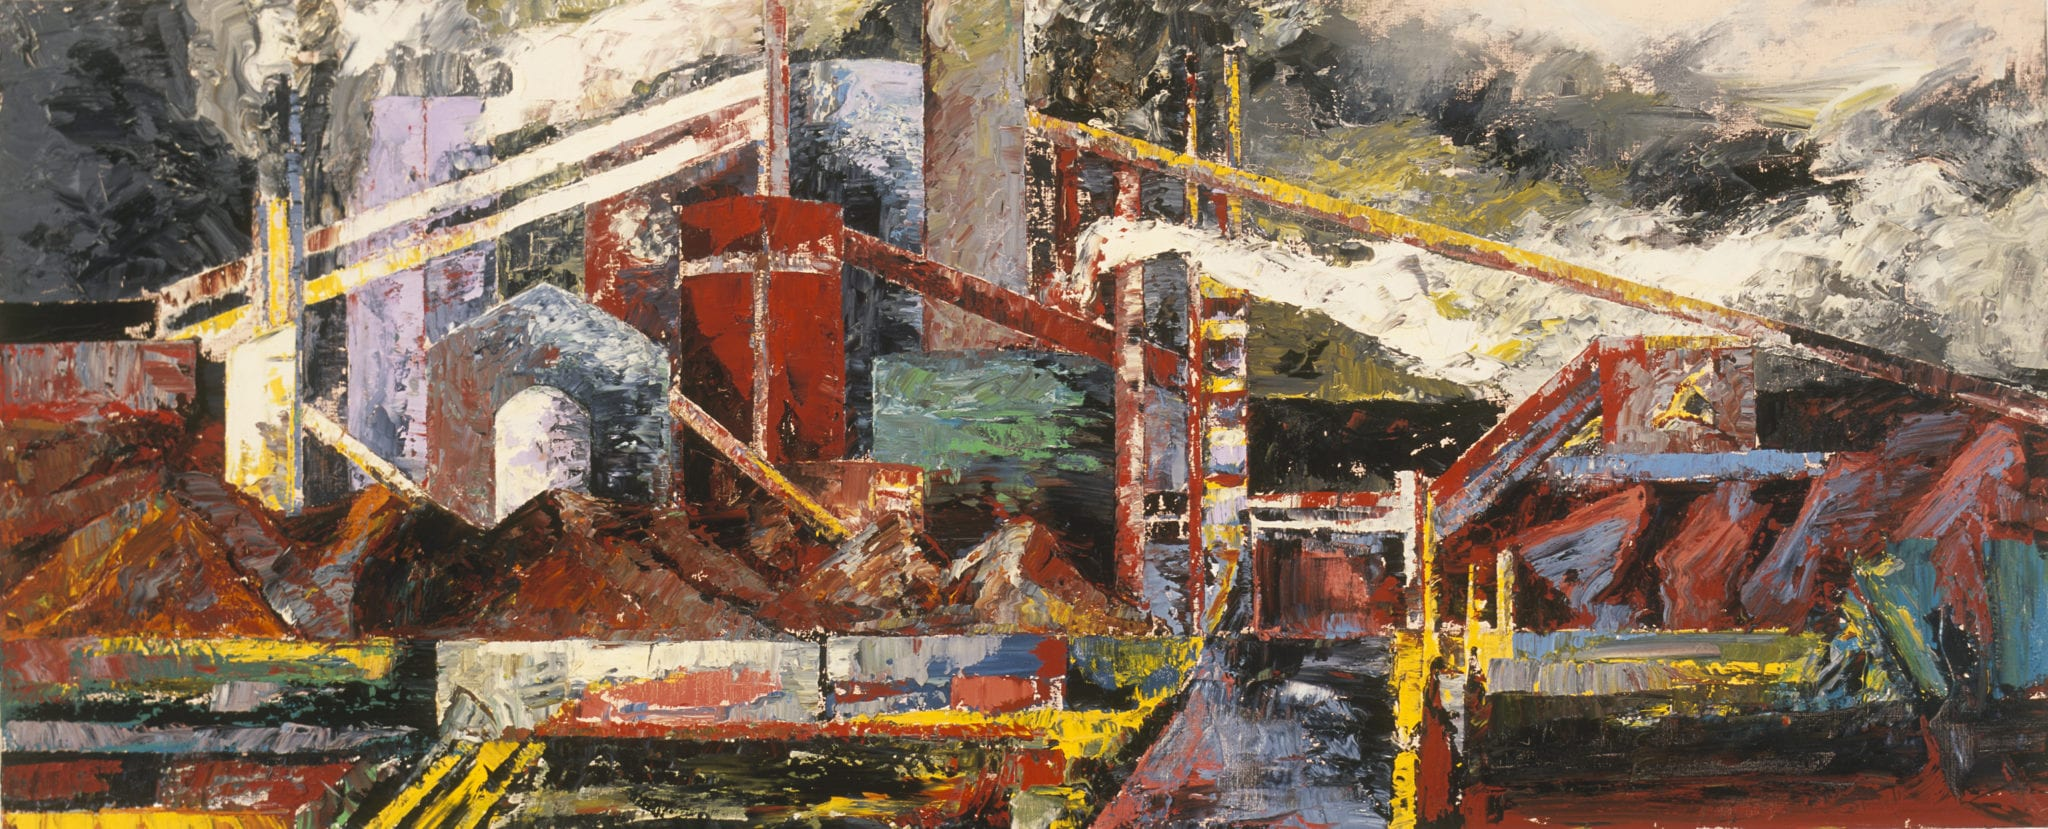 Image credit: Mandy Martin, APM Rain, Steam & Speed, 1990, oil on linen, 100 x 244.2 cm, Cbus Collection of Australian Art.